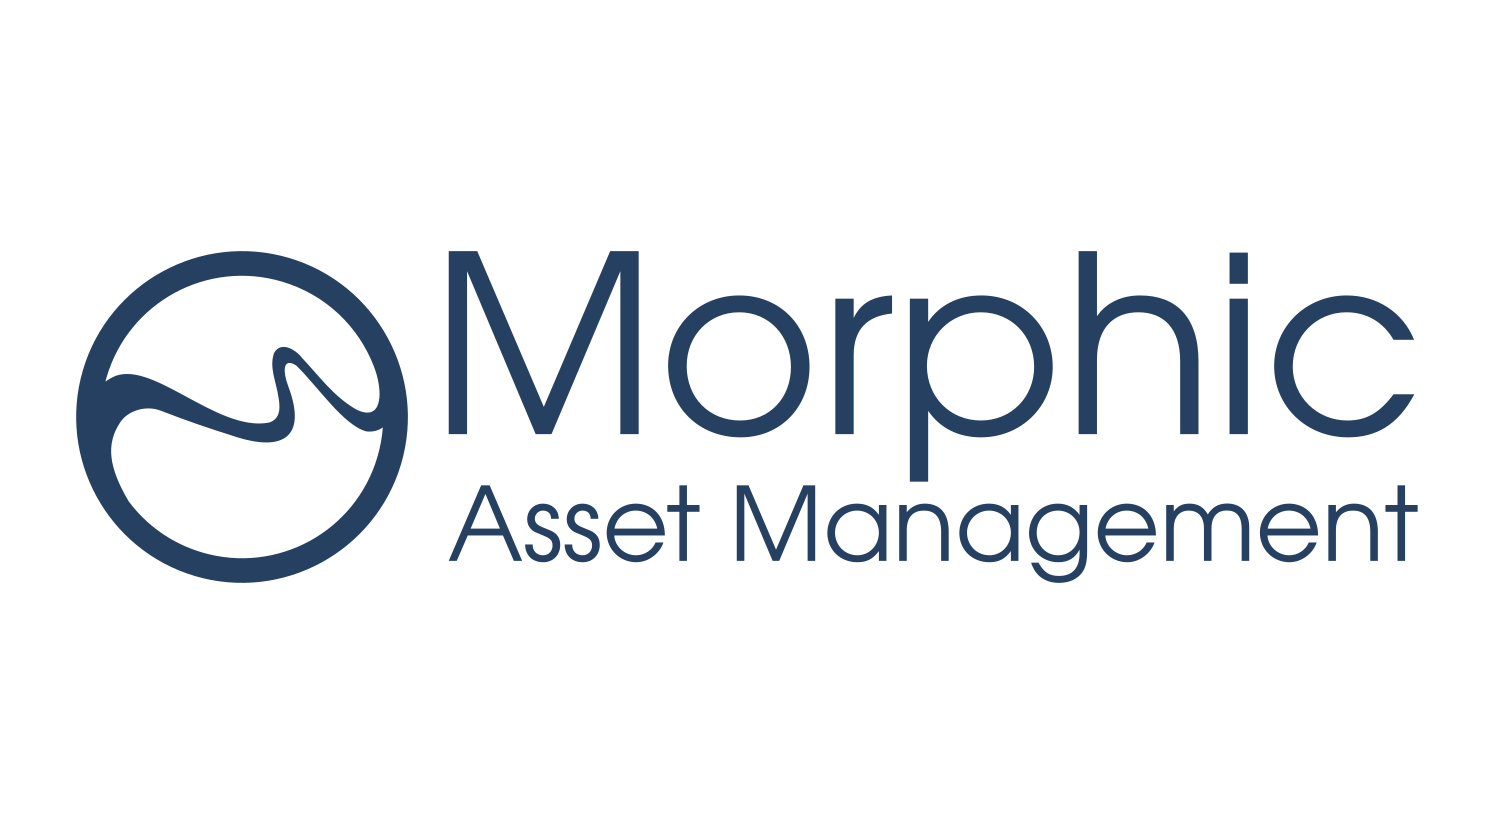 morphic asset management chad slater news blog research podcast